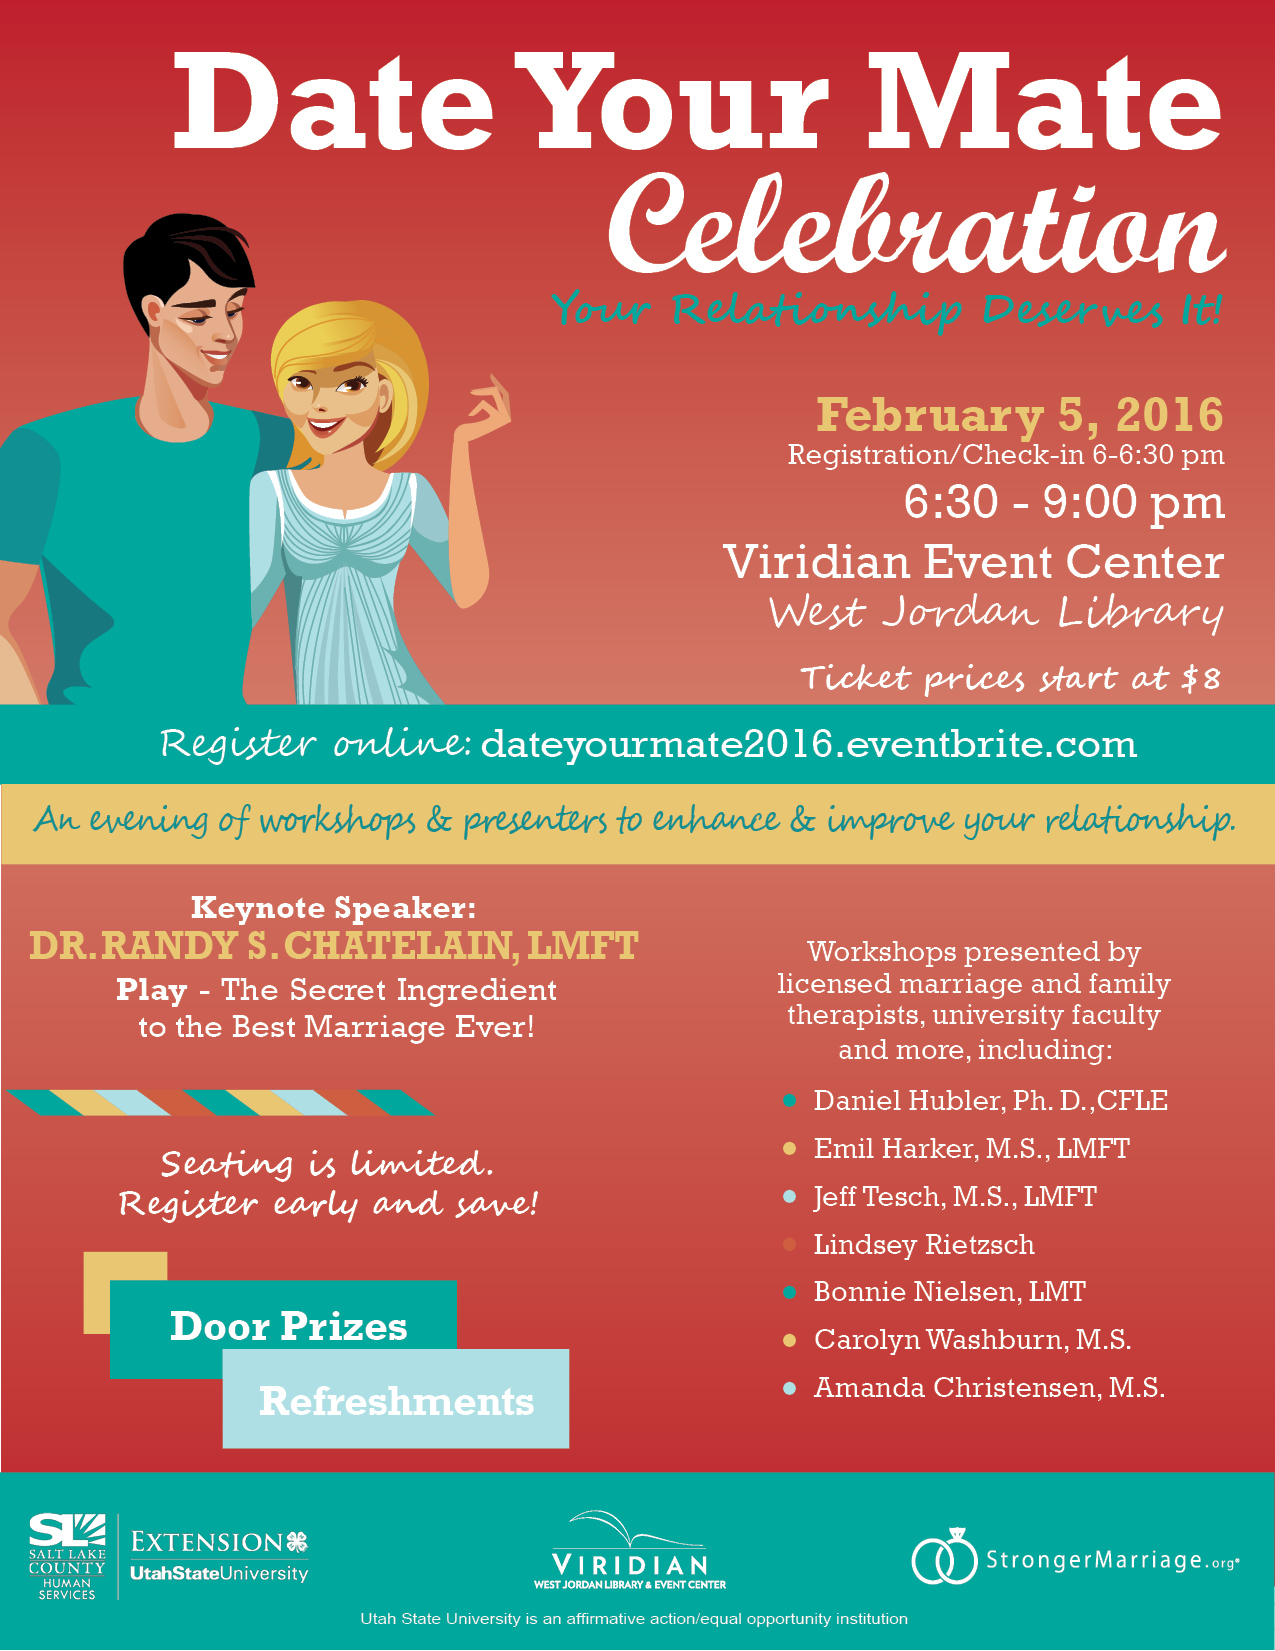 Date Your Mate Celebration 2016 flyer